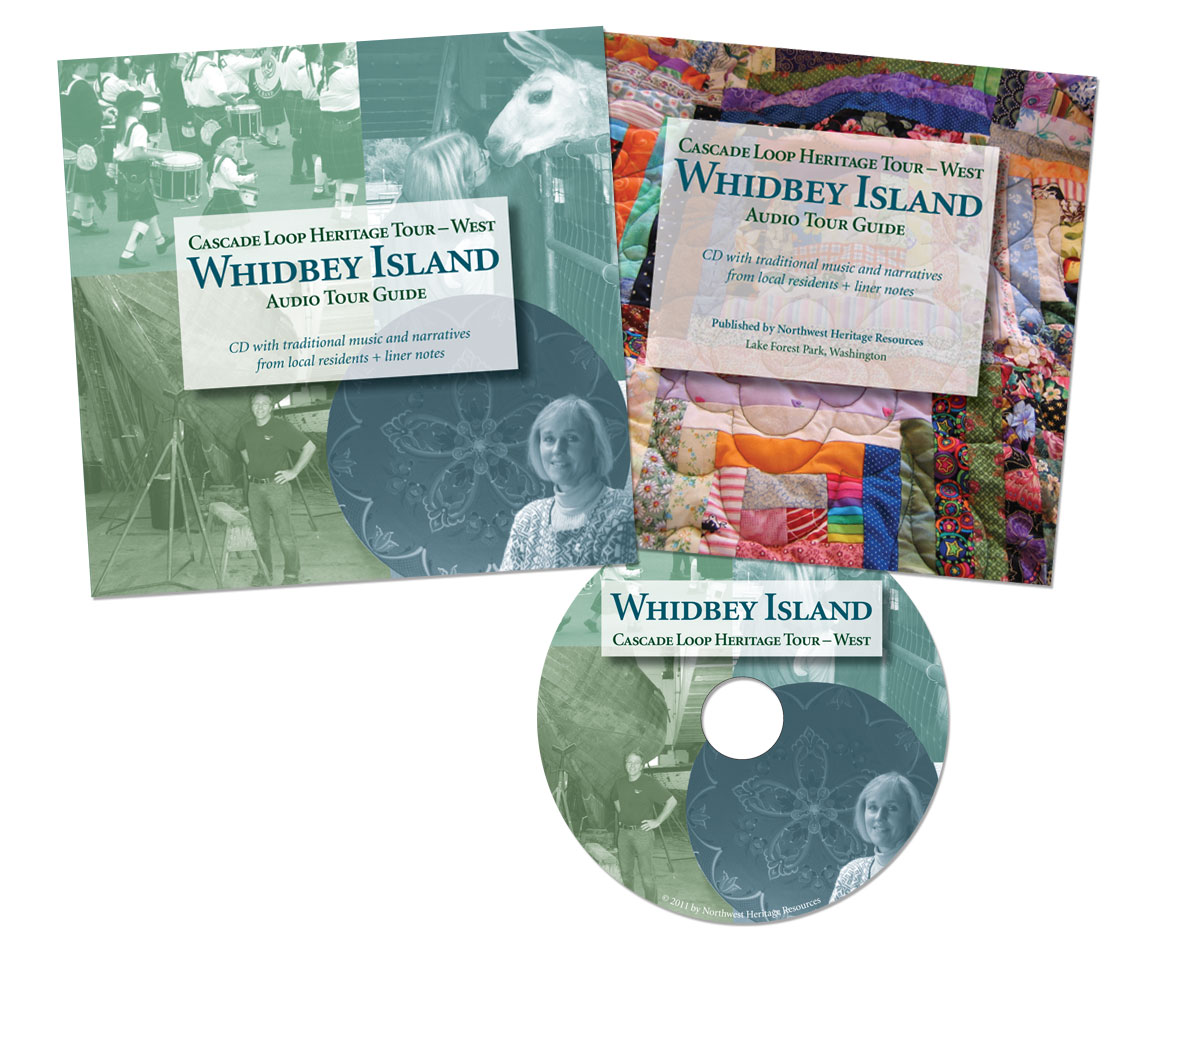 Whidbey Island Guide